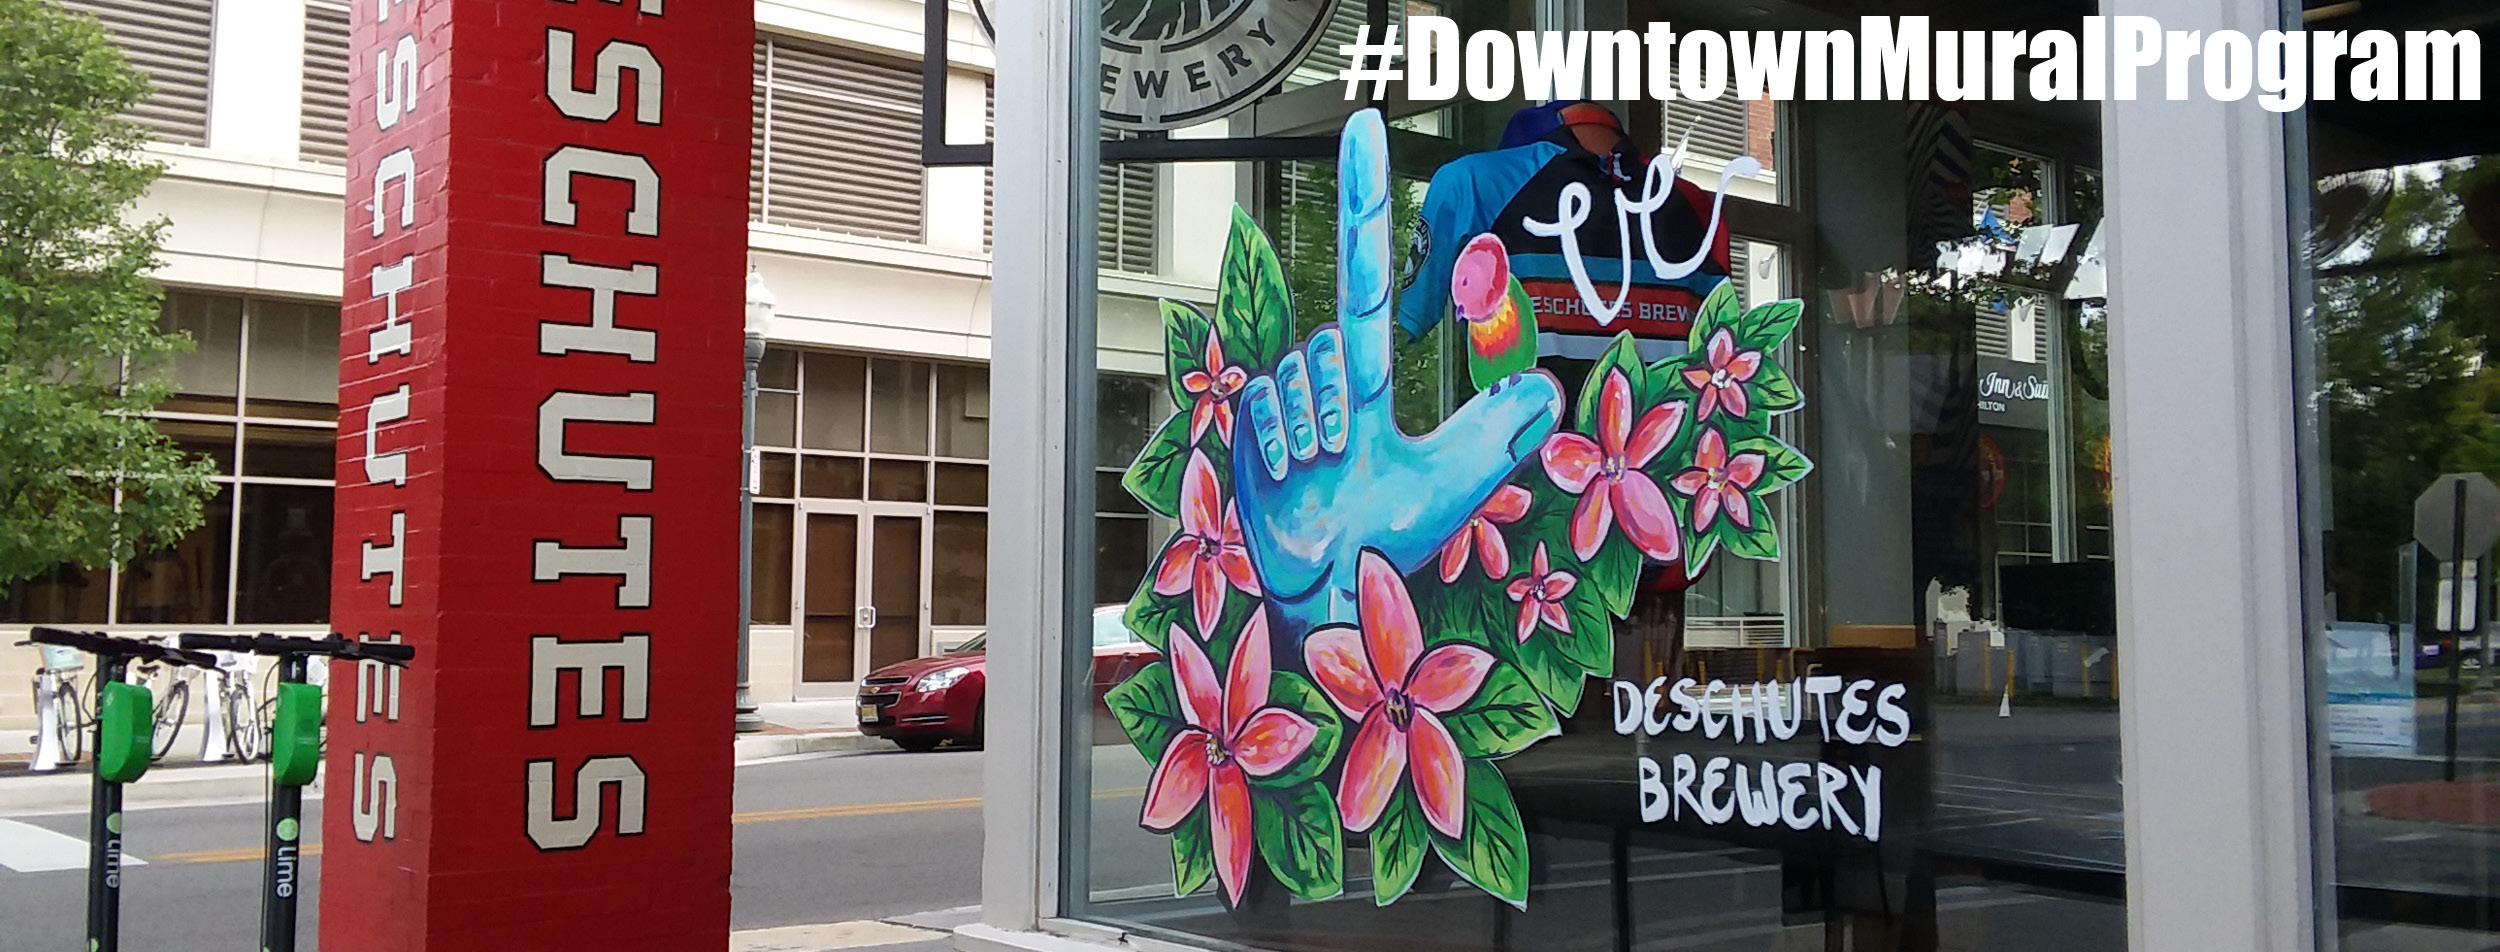 https://www.downtownroanoke.org/explore/downtown-mural-project